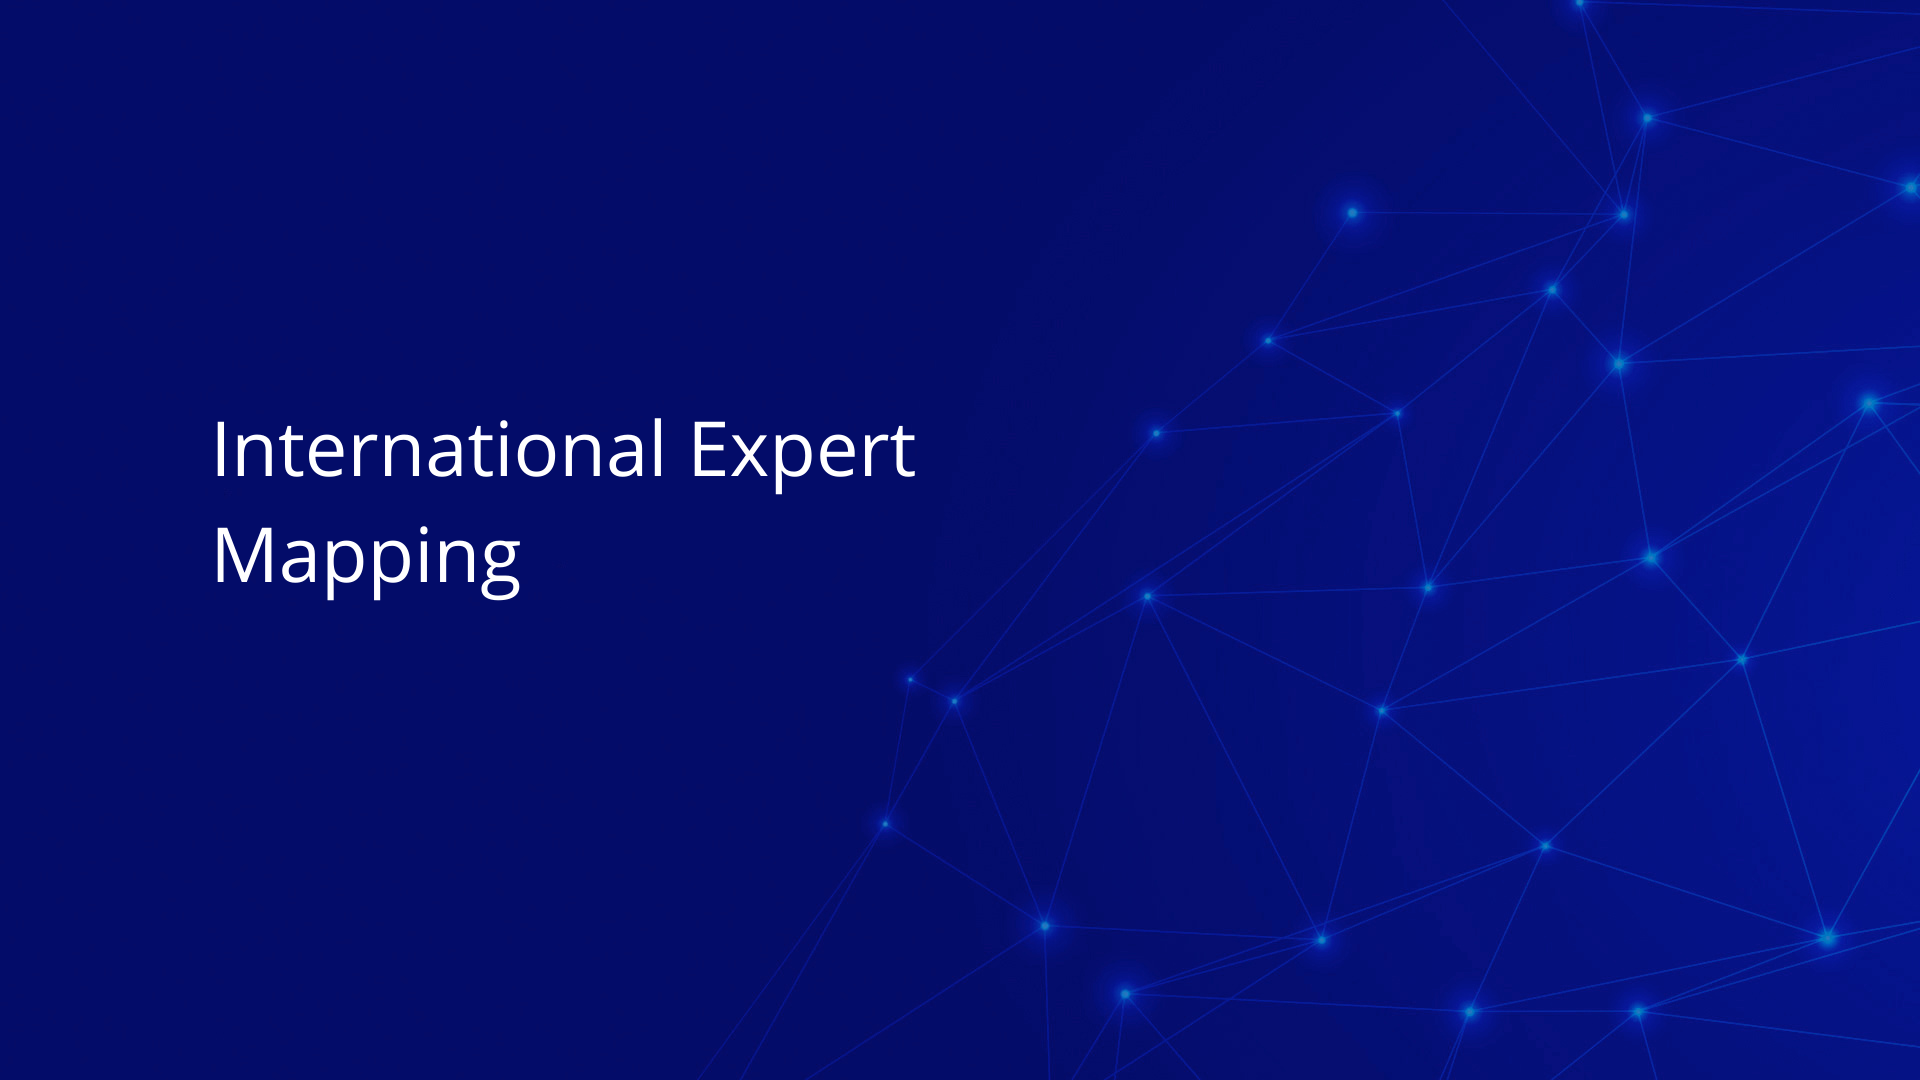 International Expert Mapping on white text on blue background